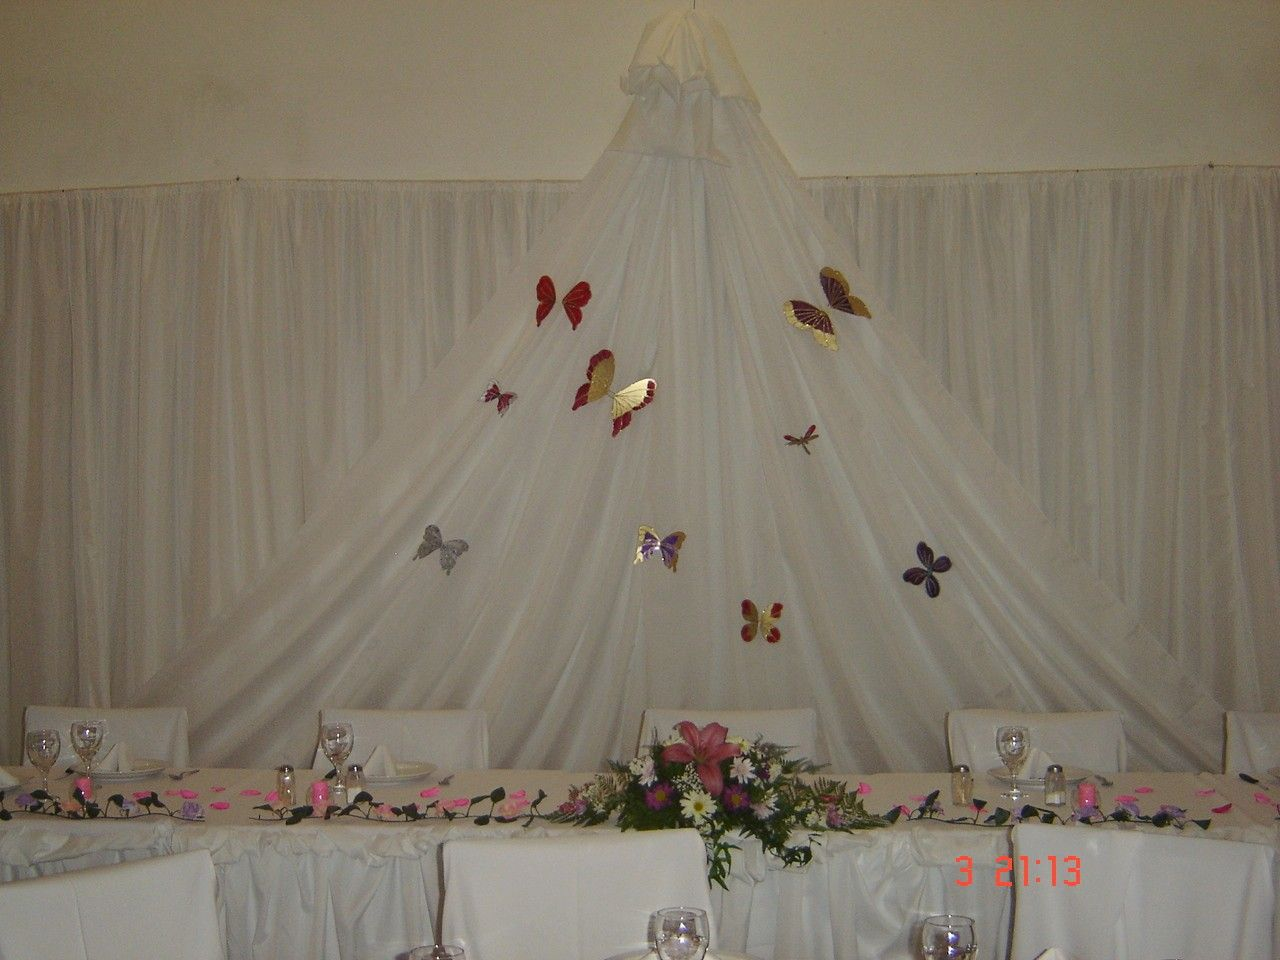 Decoracion salon para 15 a os mis trabajos decoracion for Arreglos de salon para quince anos